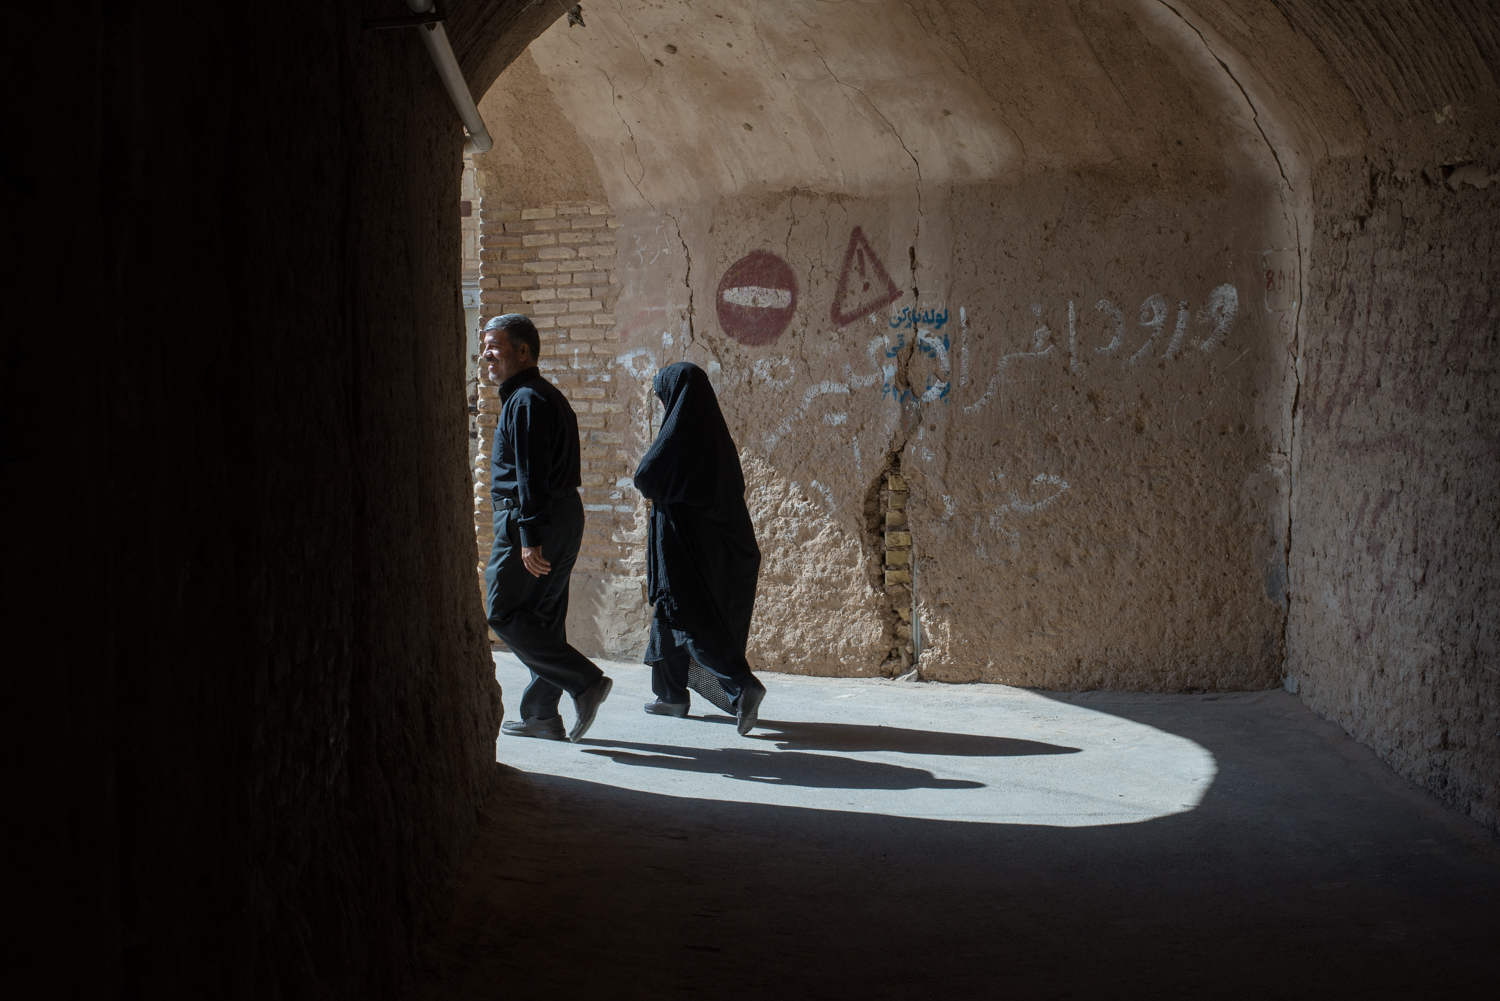 Wandering the alleys and passage ways of Yazd.